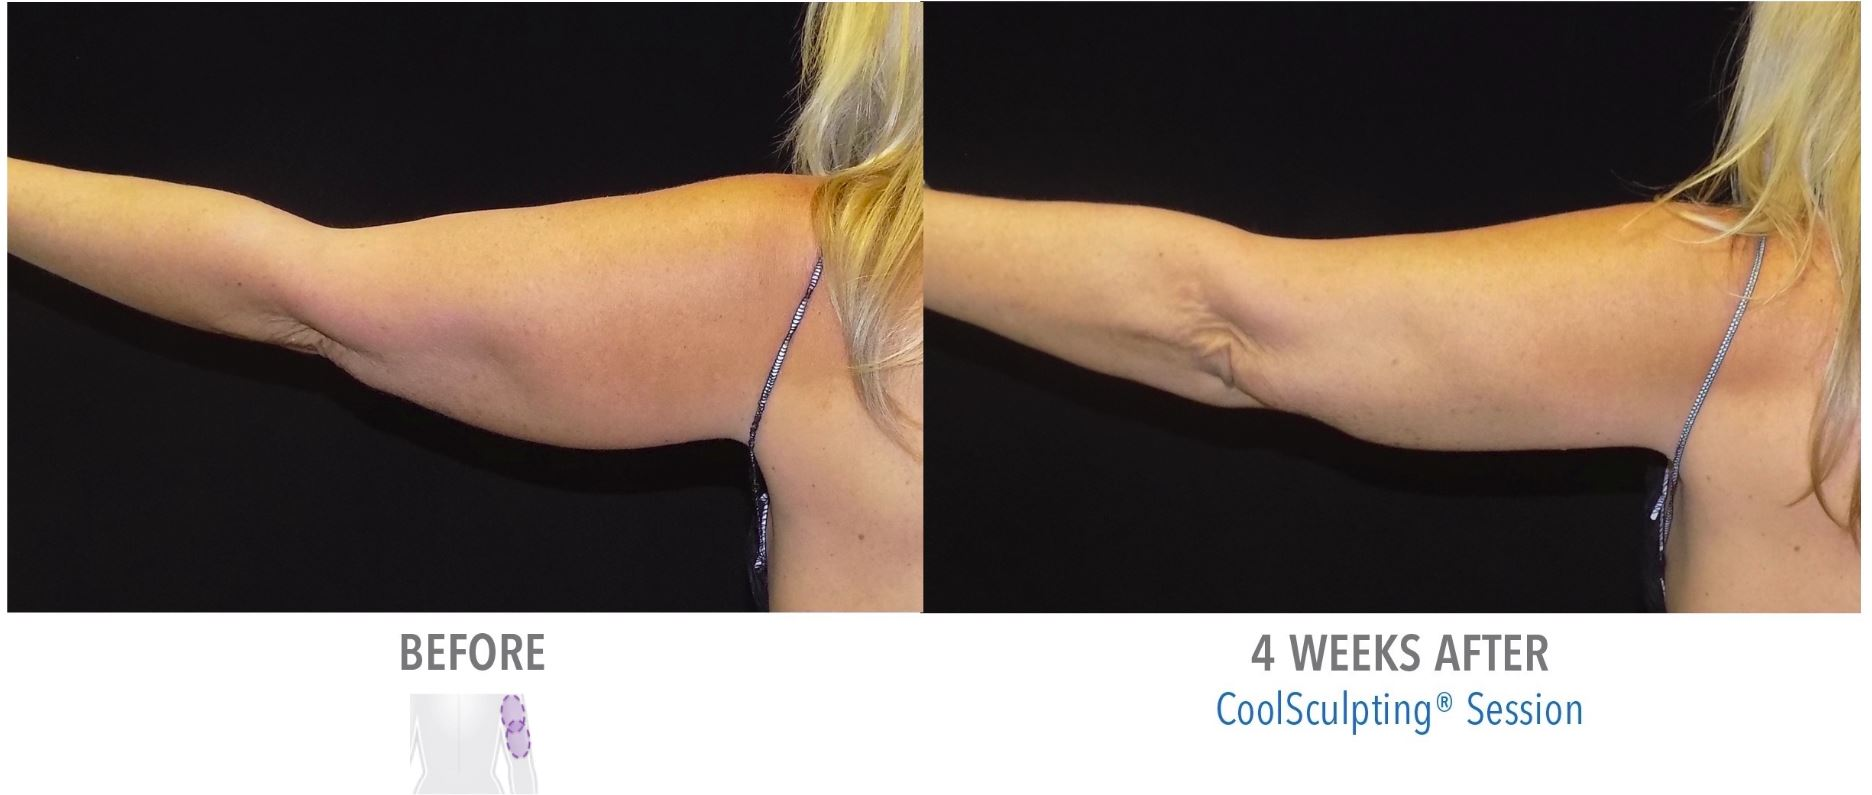 CoolSculpting Arms - Before and After Result